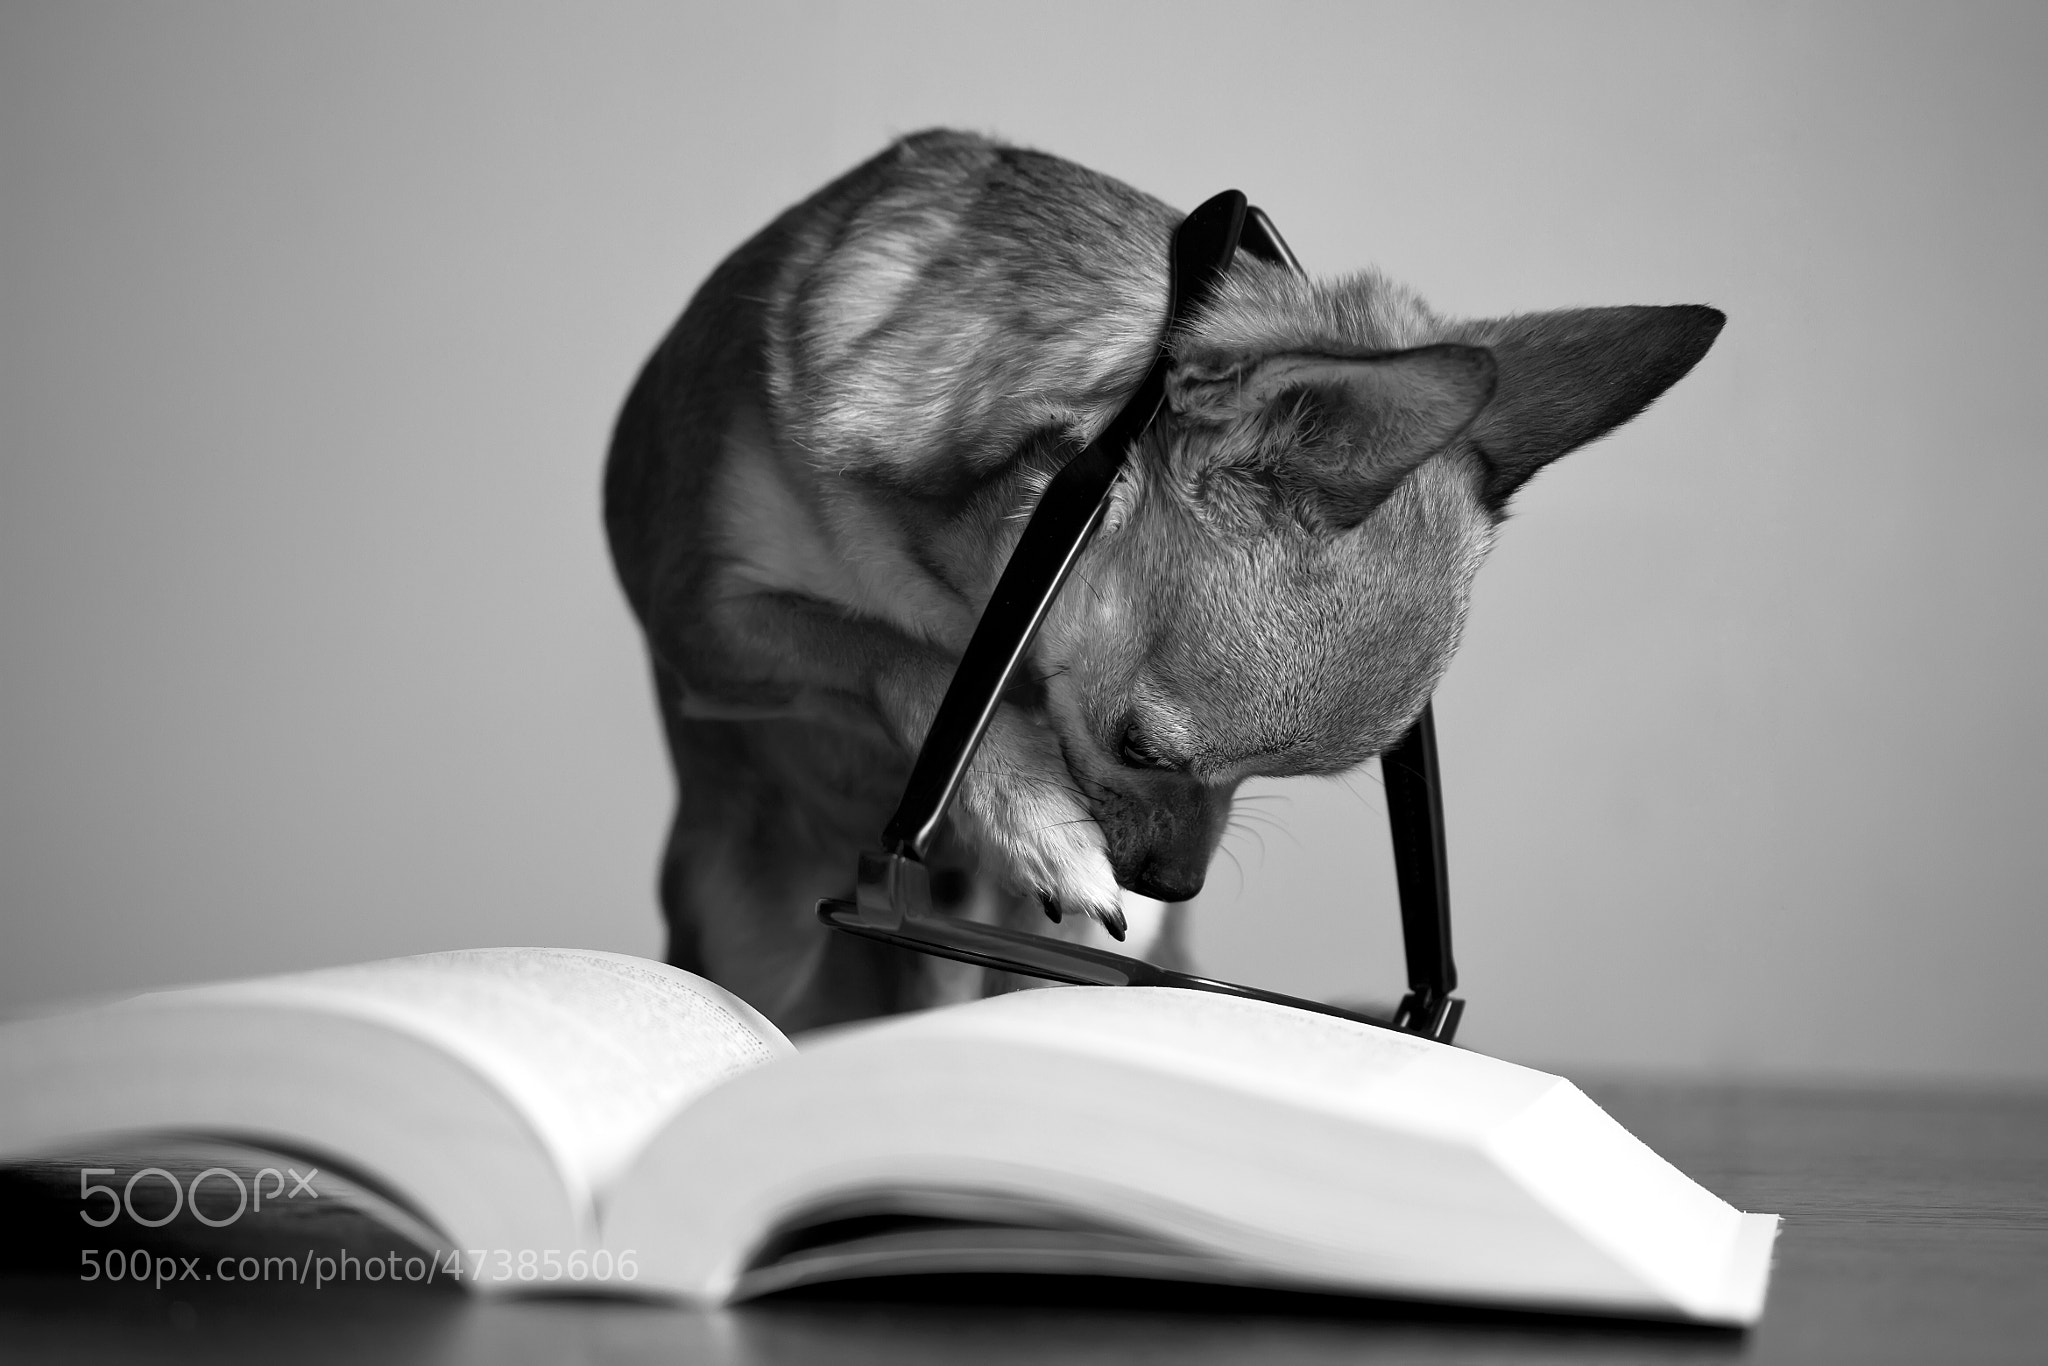 Photograph Learning to read by Heiðbrá Steinþórsdóttir on 500px